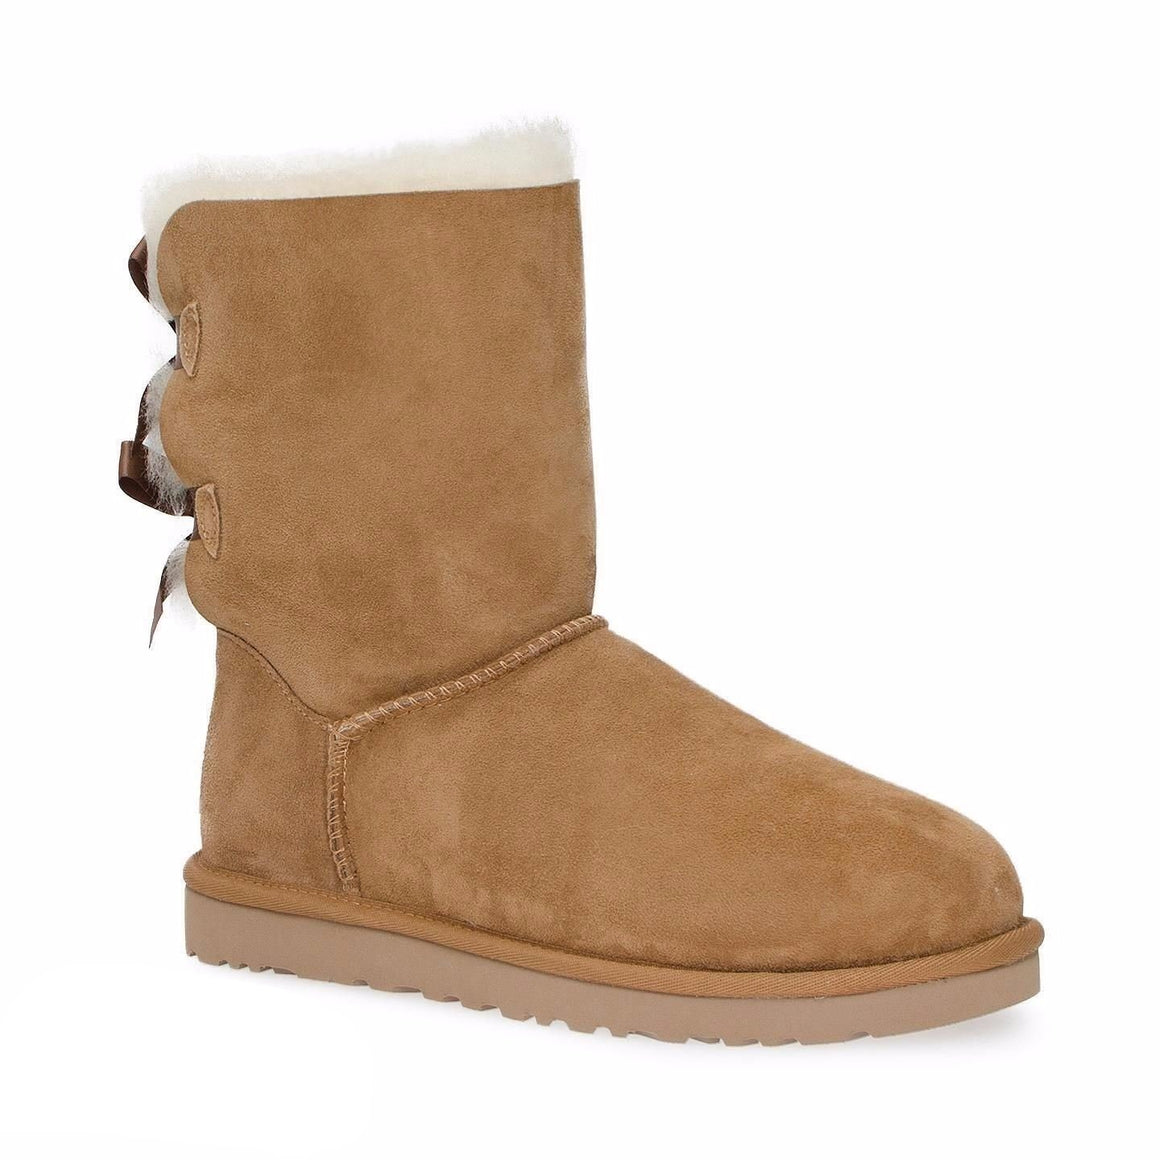 UGG Bailey Bow Chestnut Boots